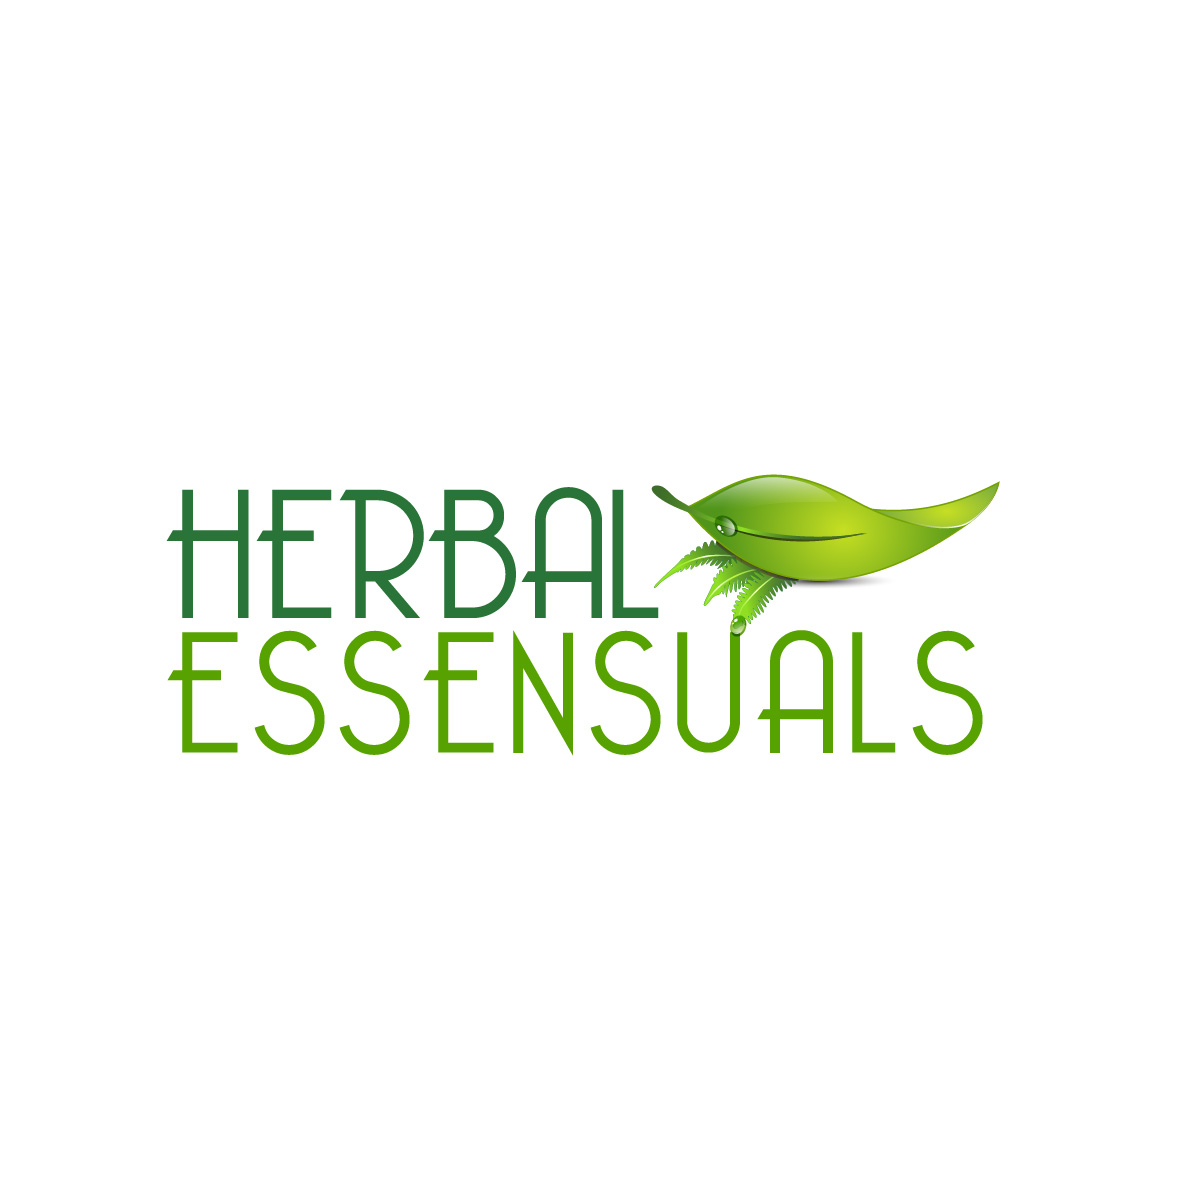 Logo Design by Robert Engi - Entry No. 159 in the Logo Design Contest Captivating Logo Design for Herbal Essensuals.